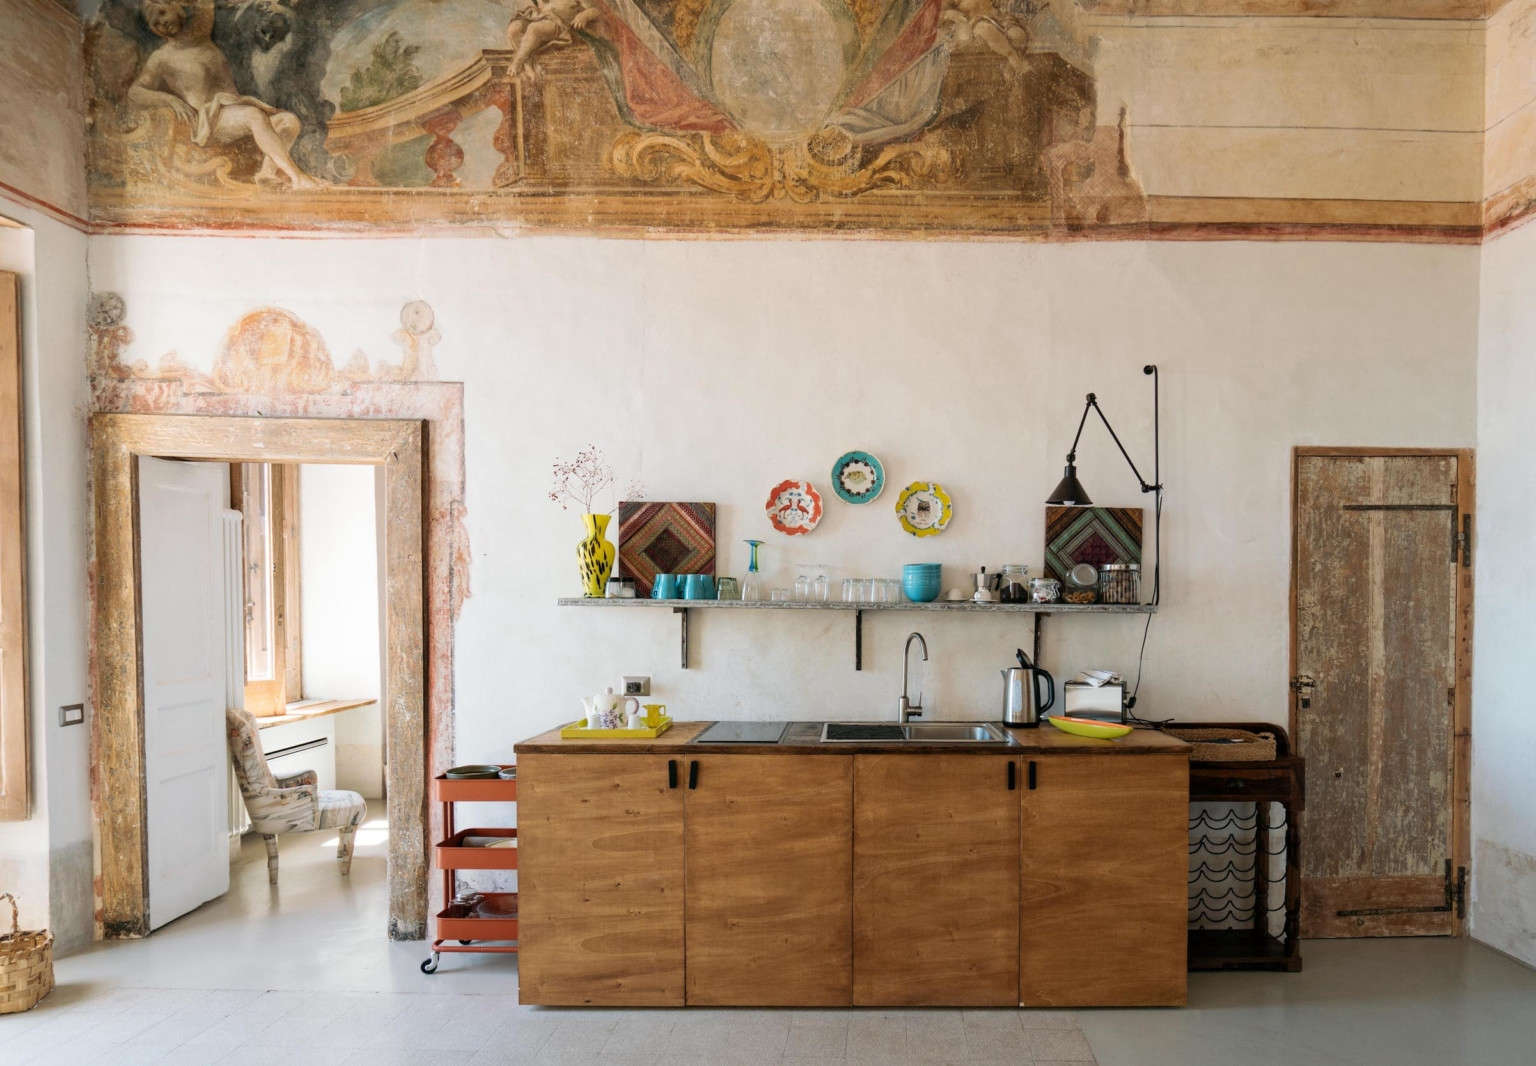 A Romantic Monastery-Turned-Vacation Rental on the Amalfi Coast